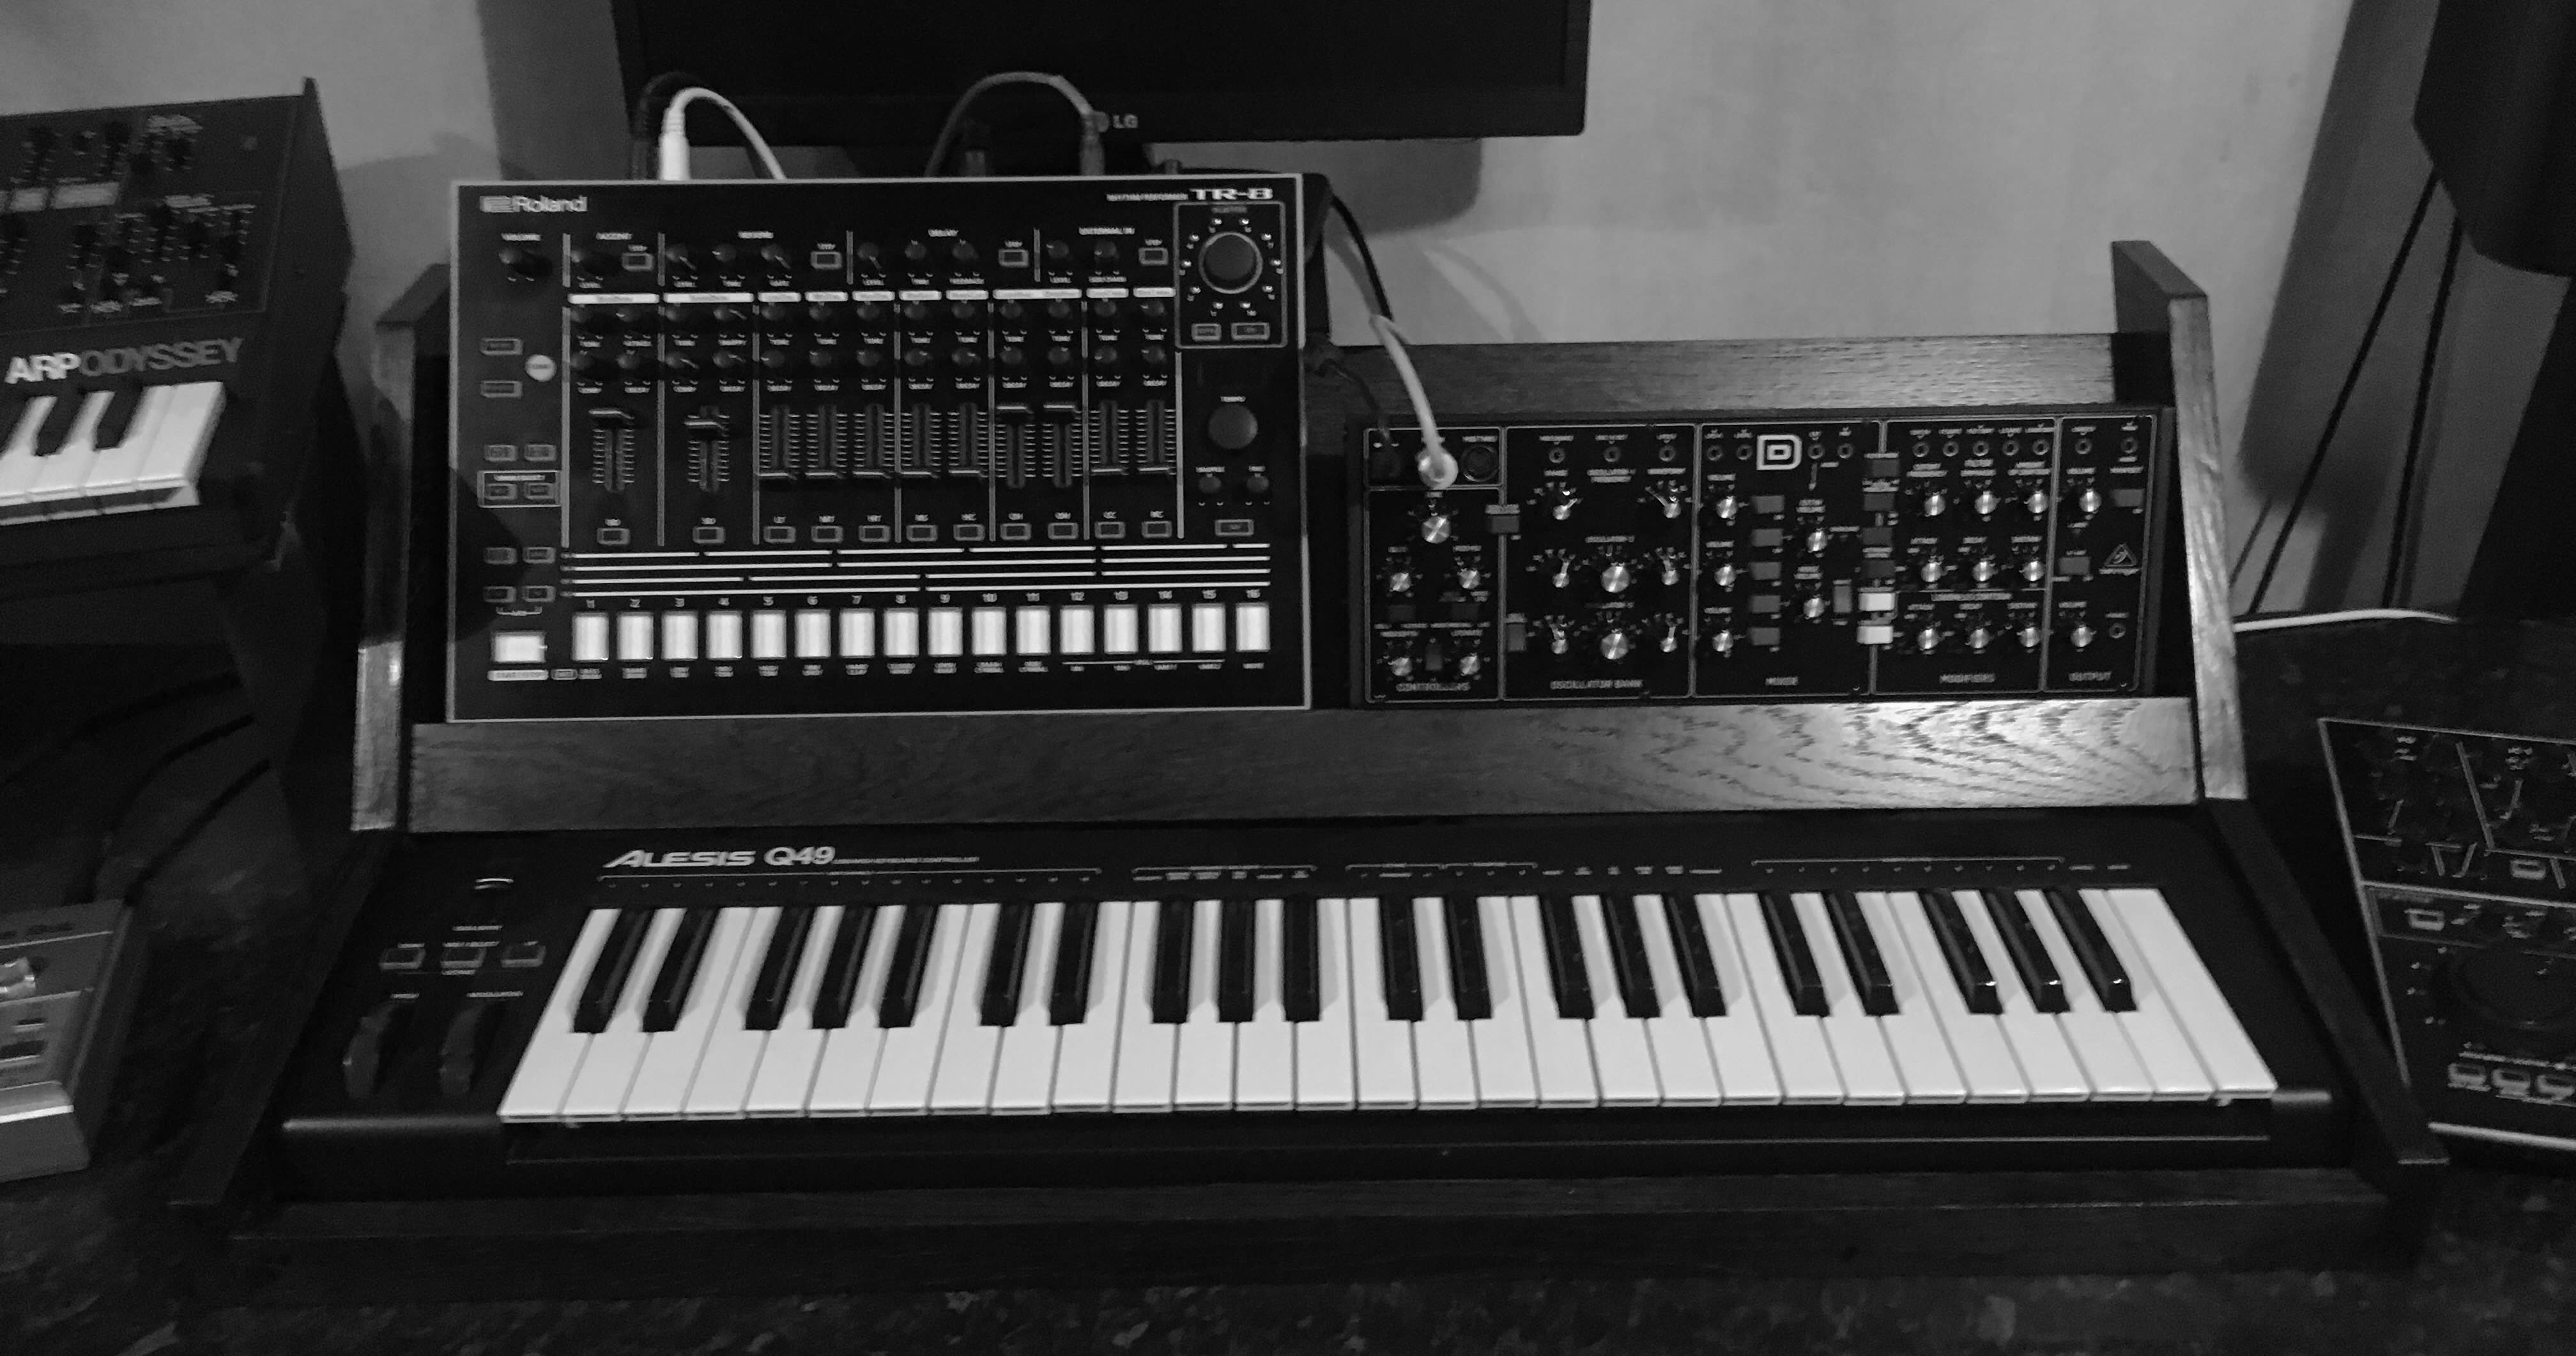 Slyfield Electronic Music